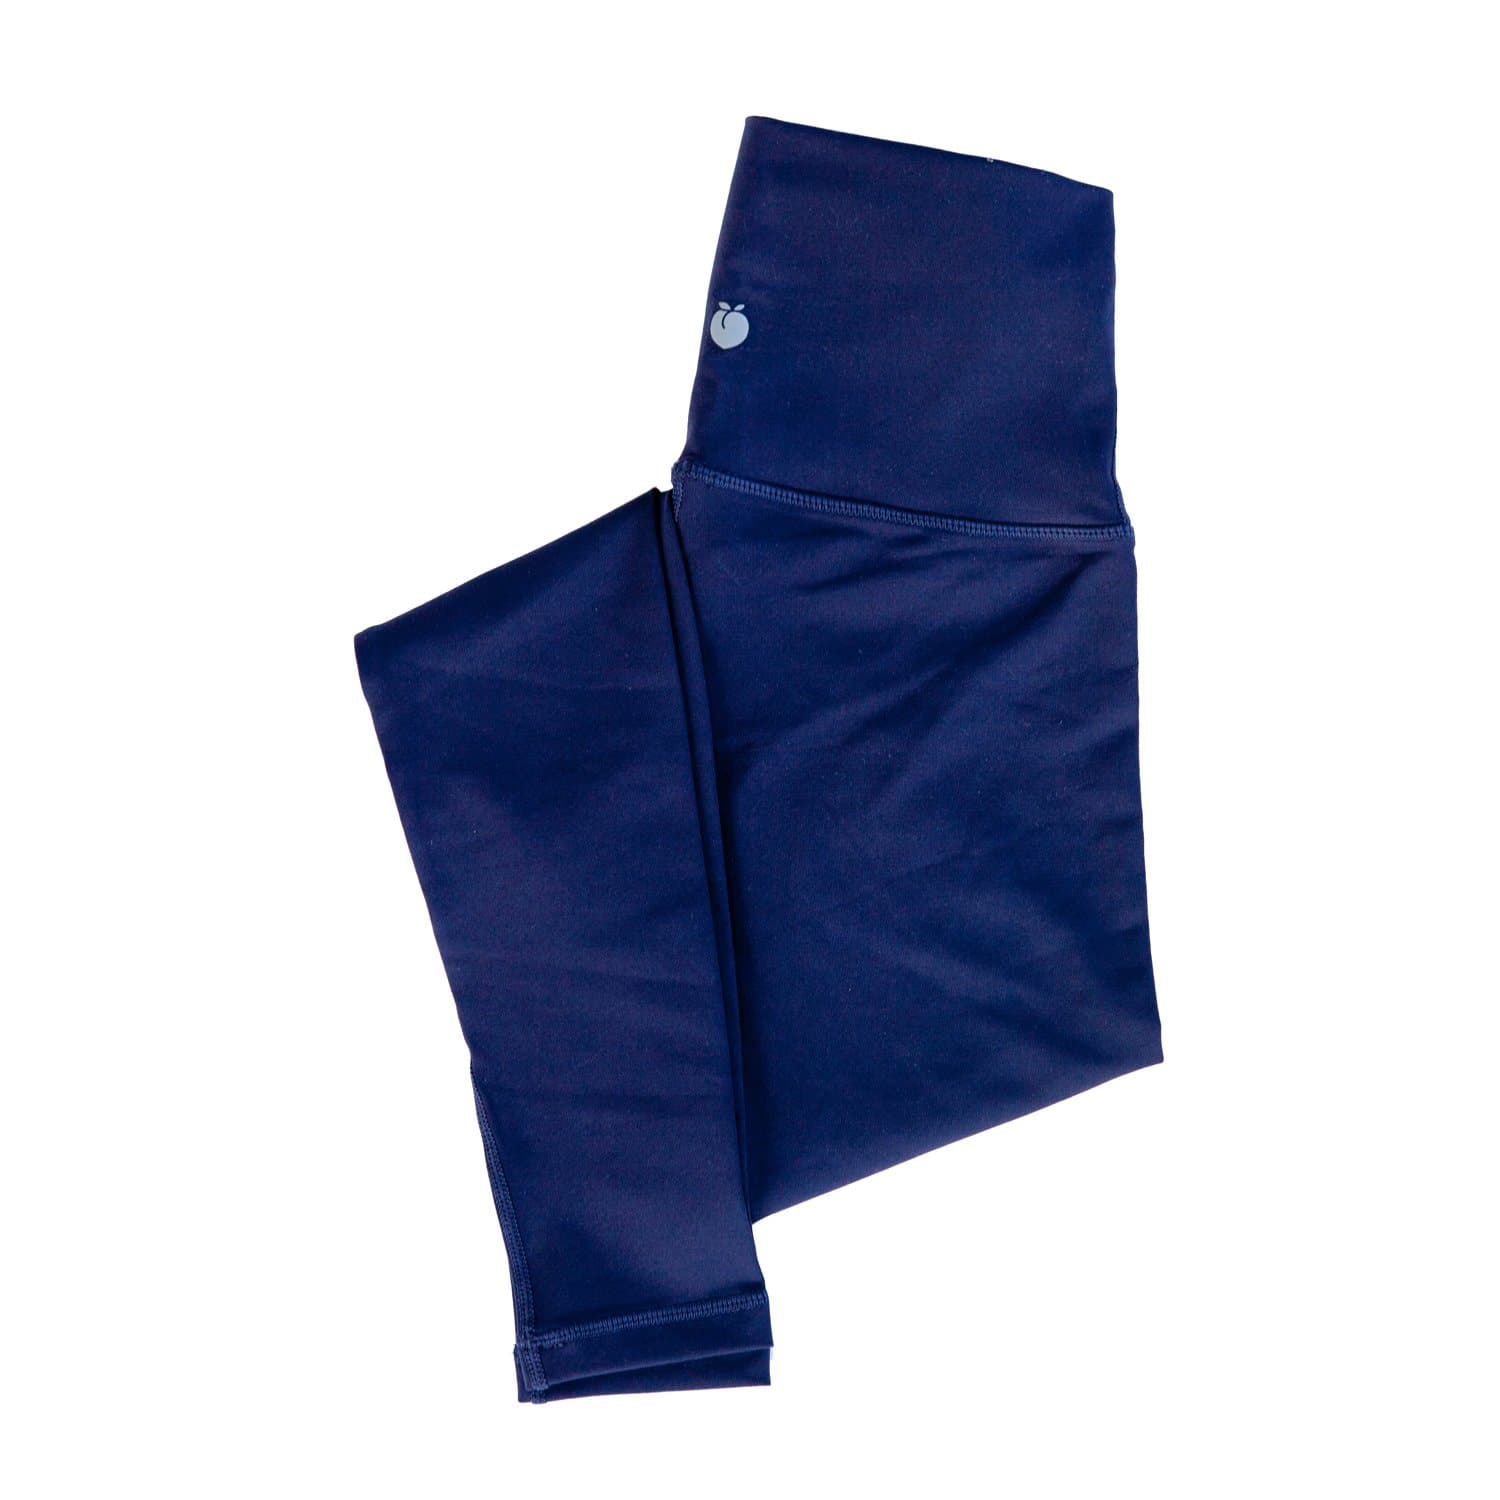 Midnight Blue High & Mighty Full Length Pant